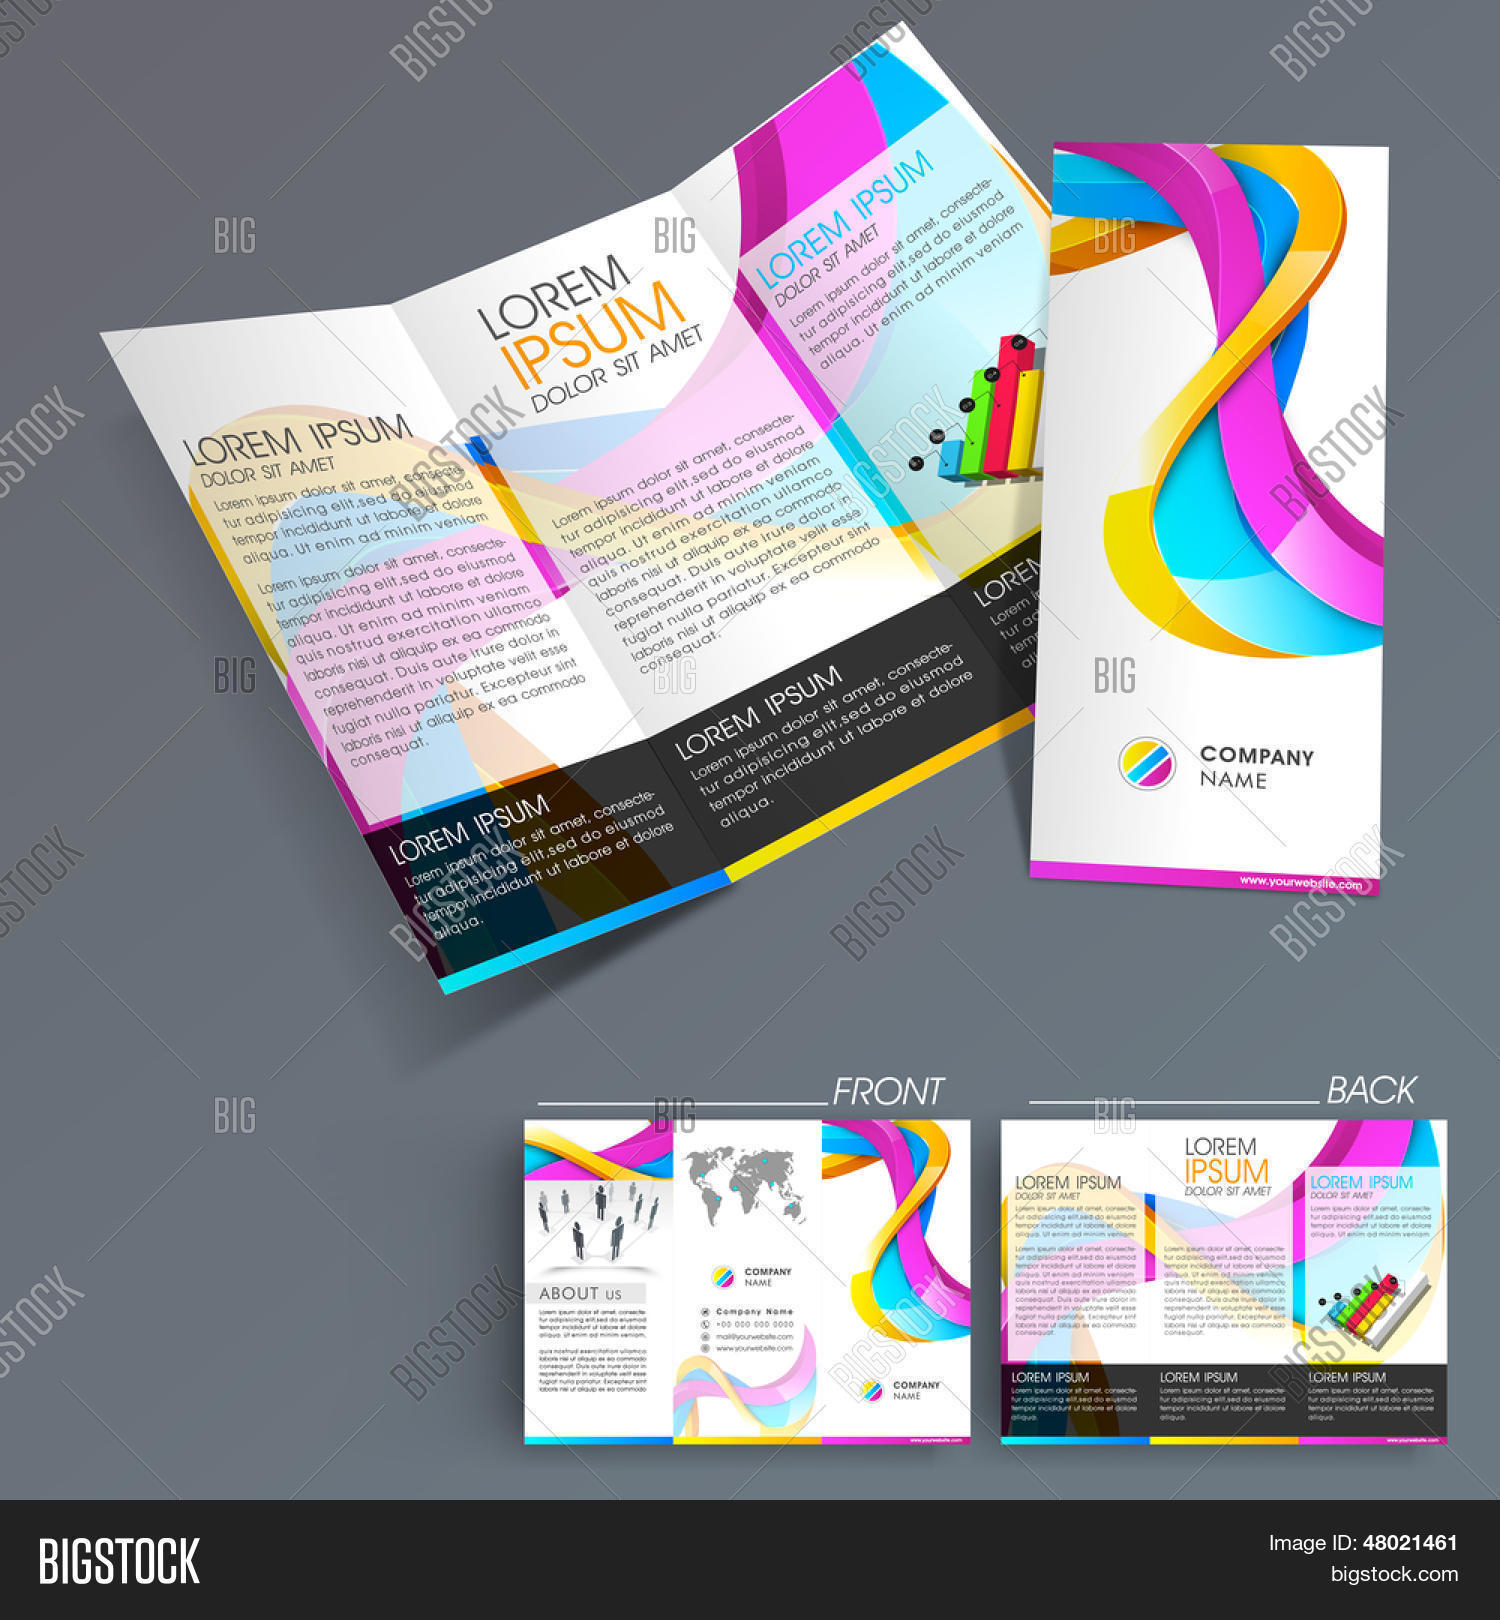 Professional flyer background design psd free download erkal professional business three fold vector photo bigstock professional flyer background design psd free download business flyers templates friedricerecipe Gallery